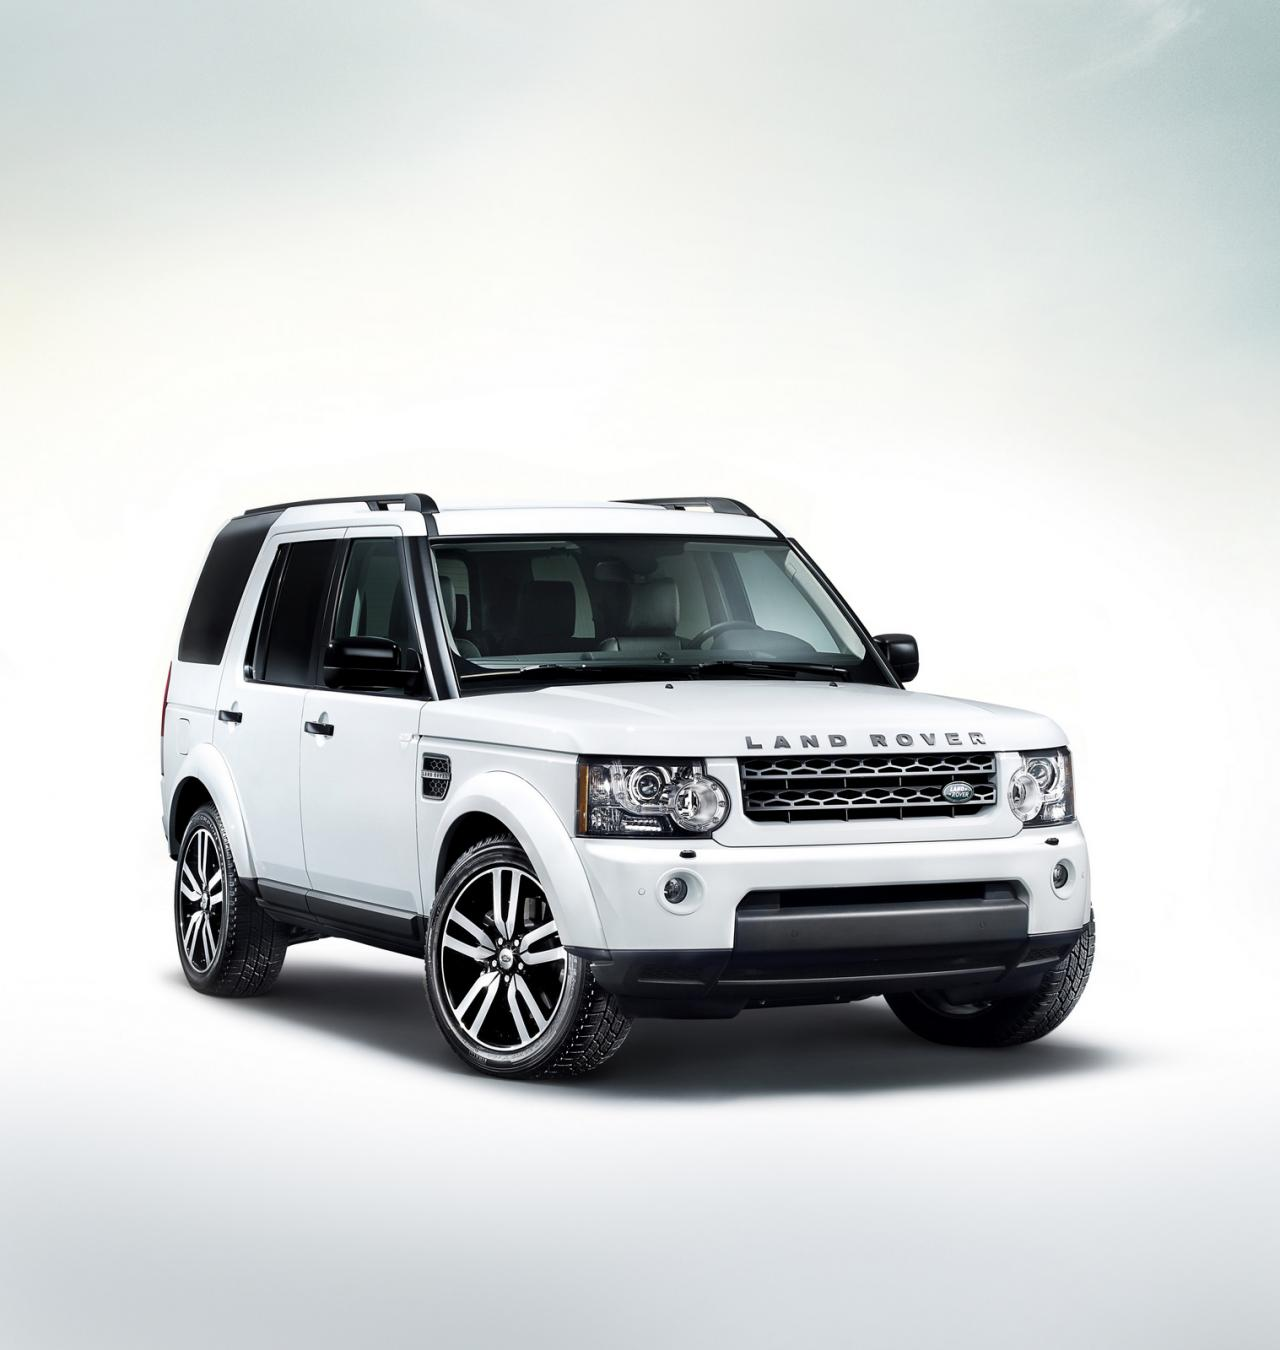 https://www.automobilesreview.com/gallery/2011-land-rover-discovery-4-landmark-special-edition/2011-land-rover-discovery-4-landmark-special-edition-02.jpg